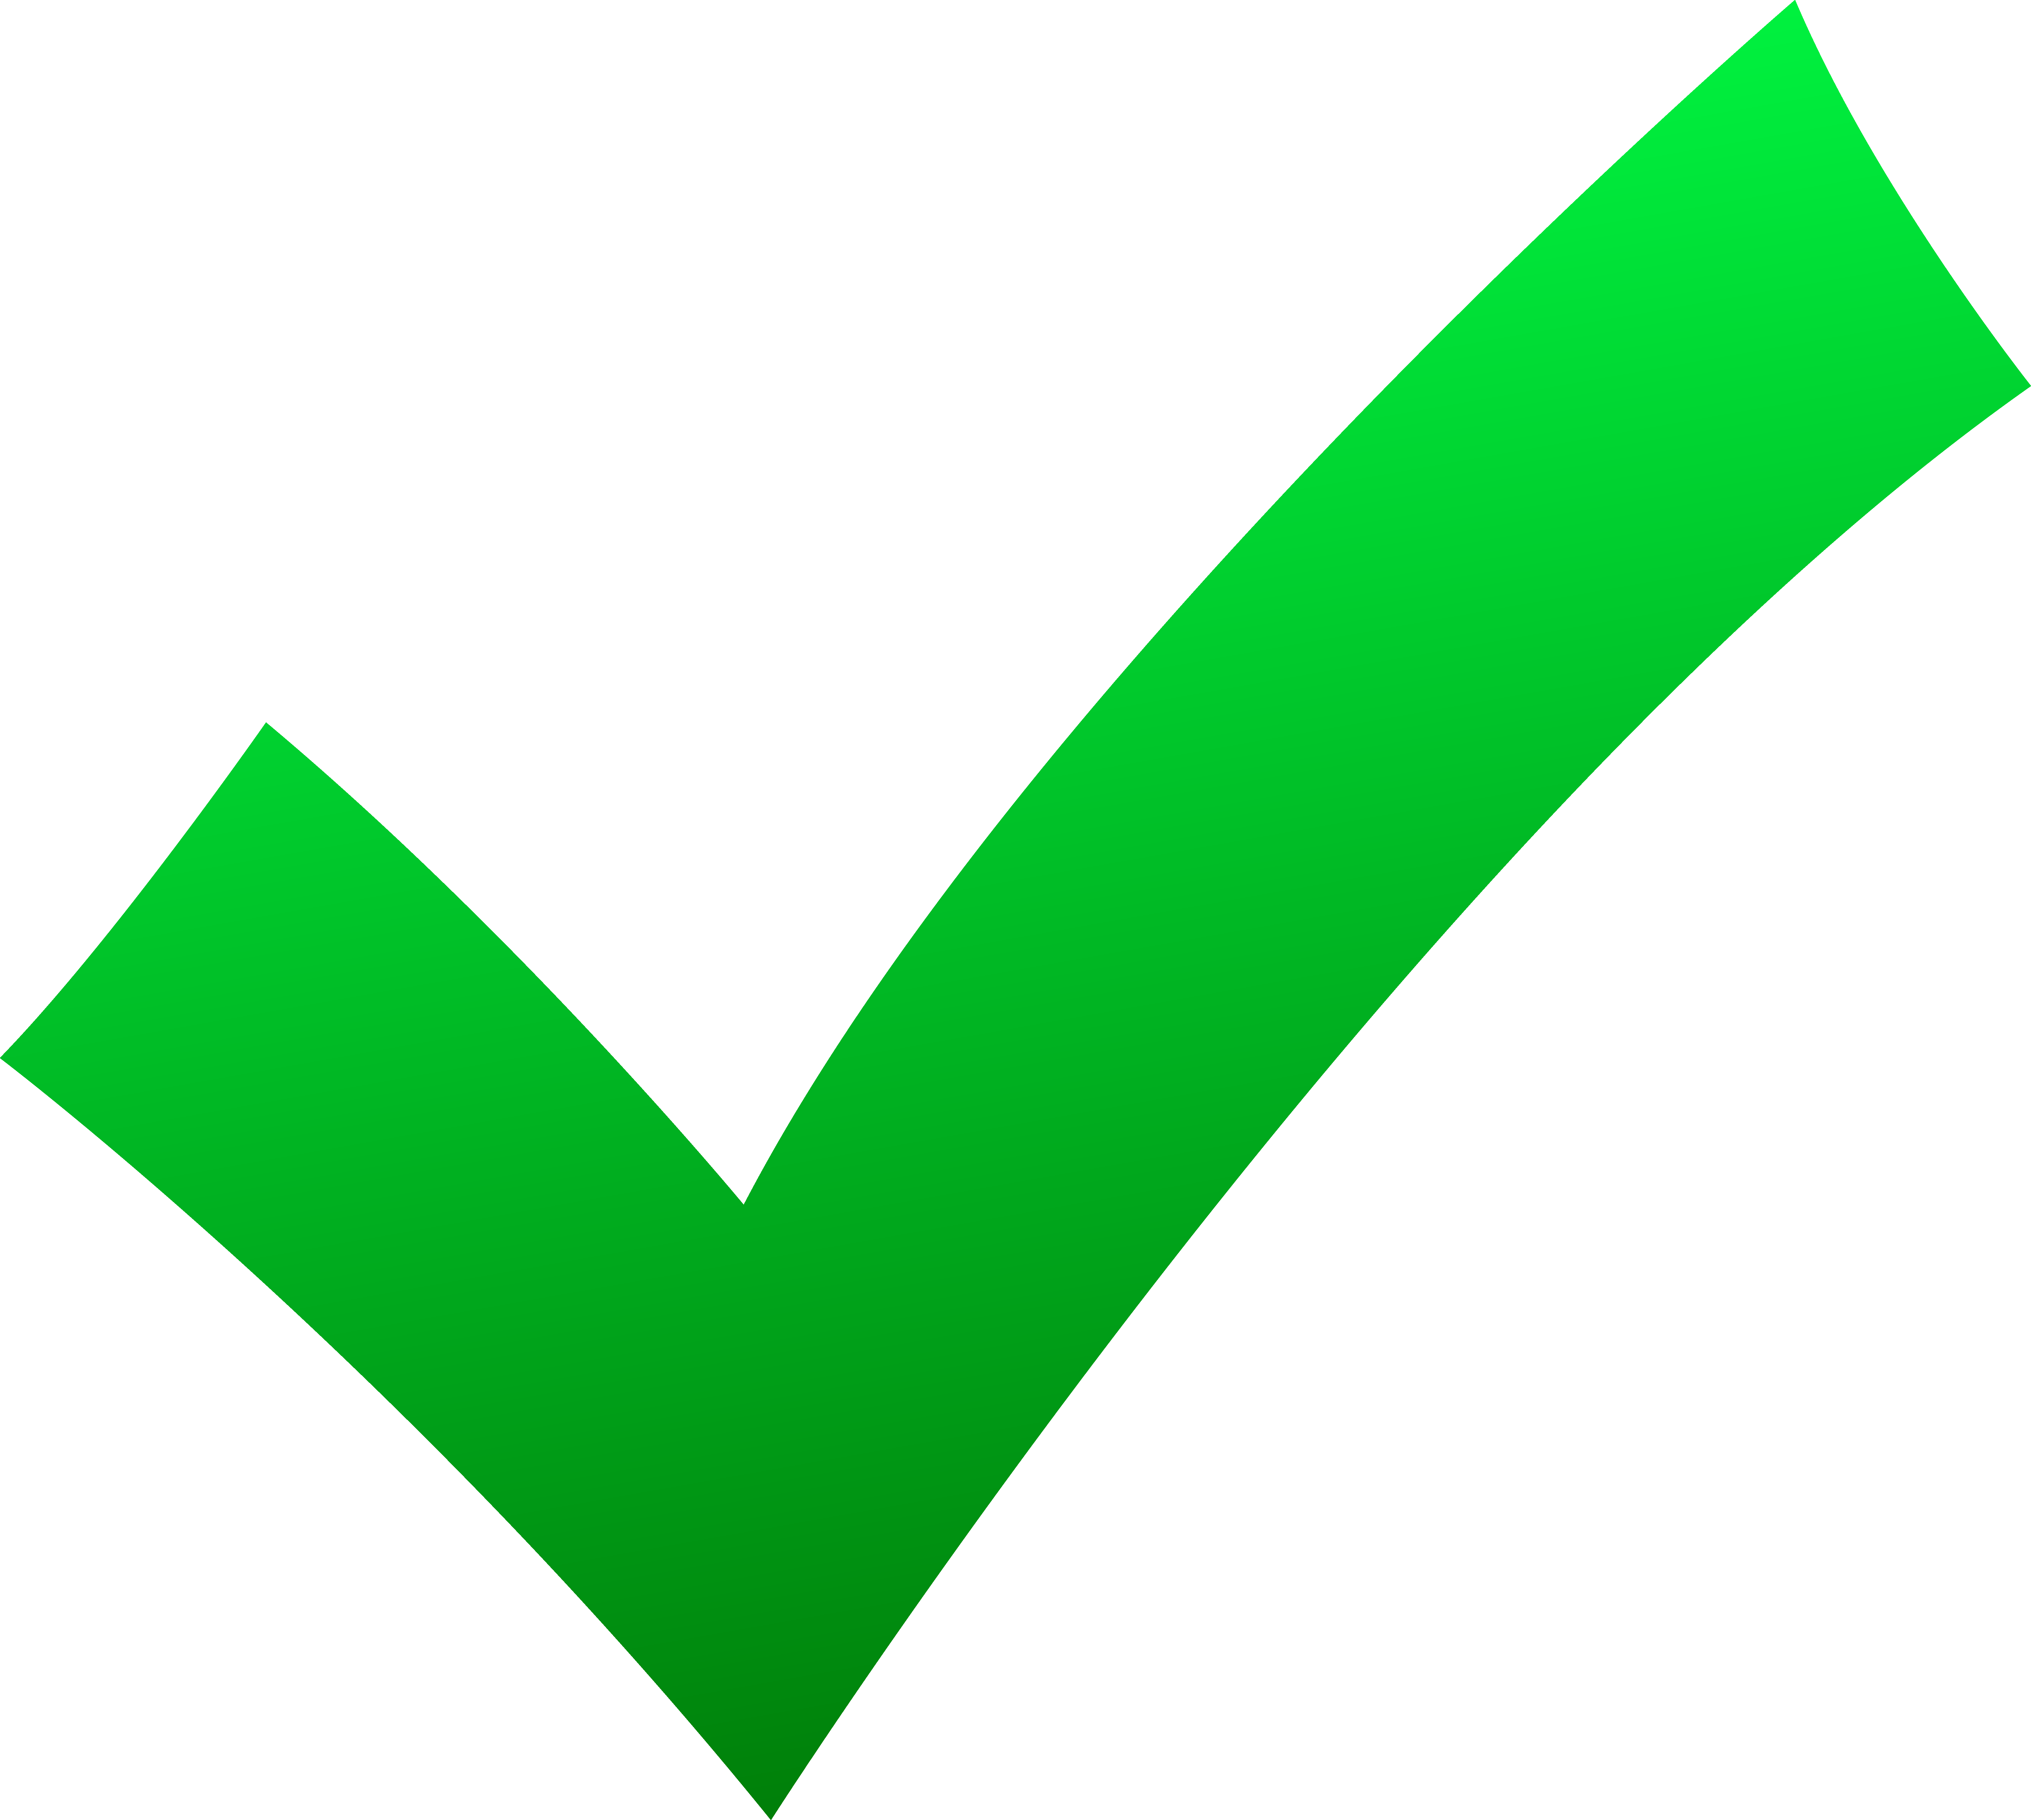 Follow up time to. Checkmark clipart green